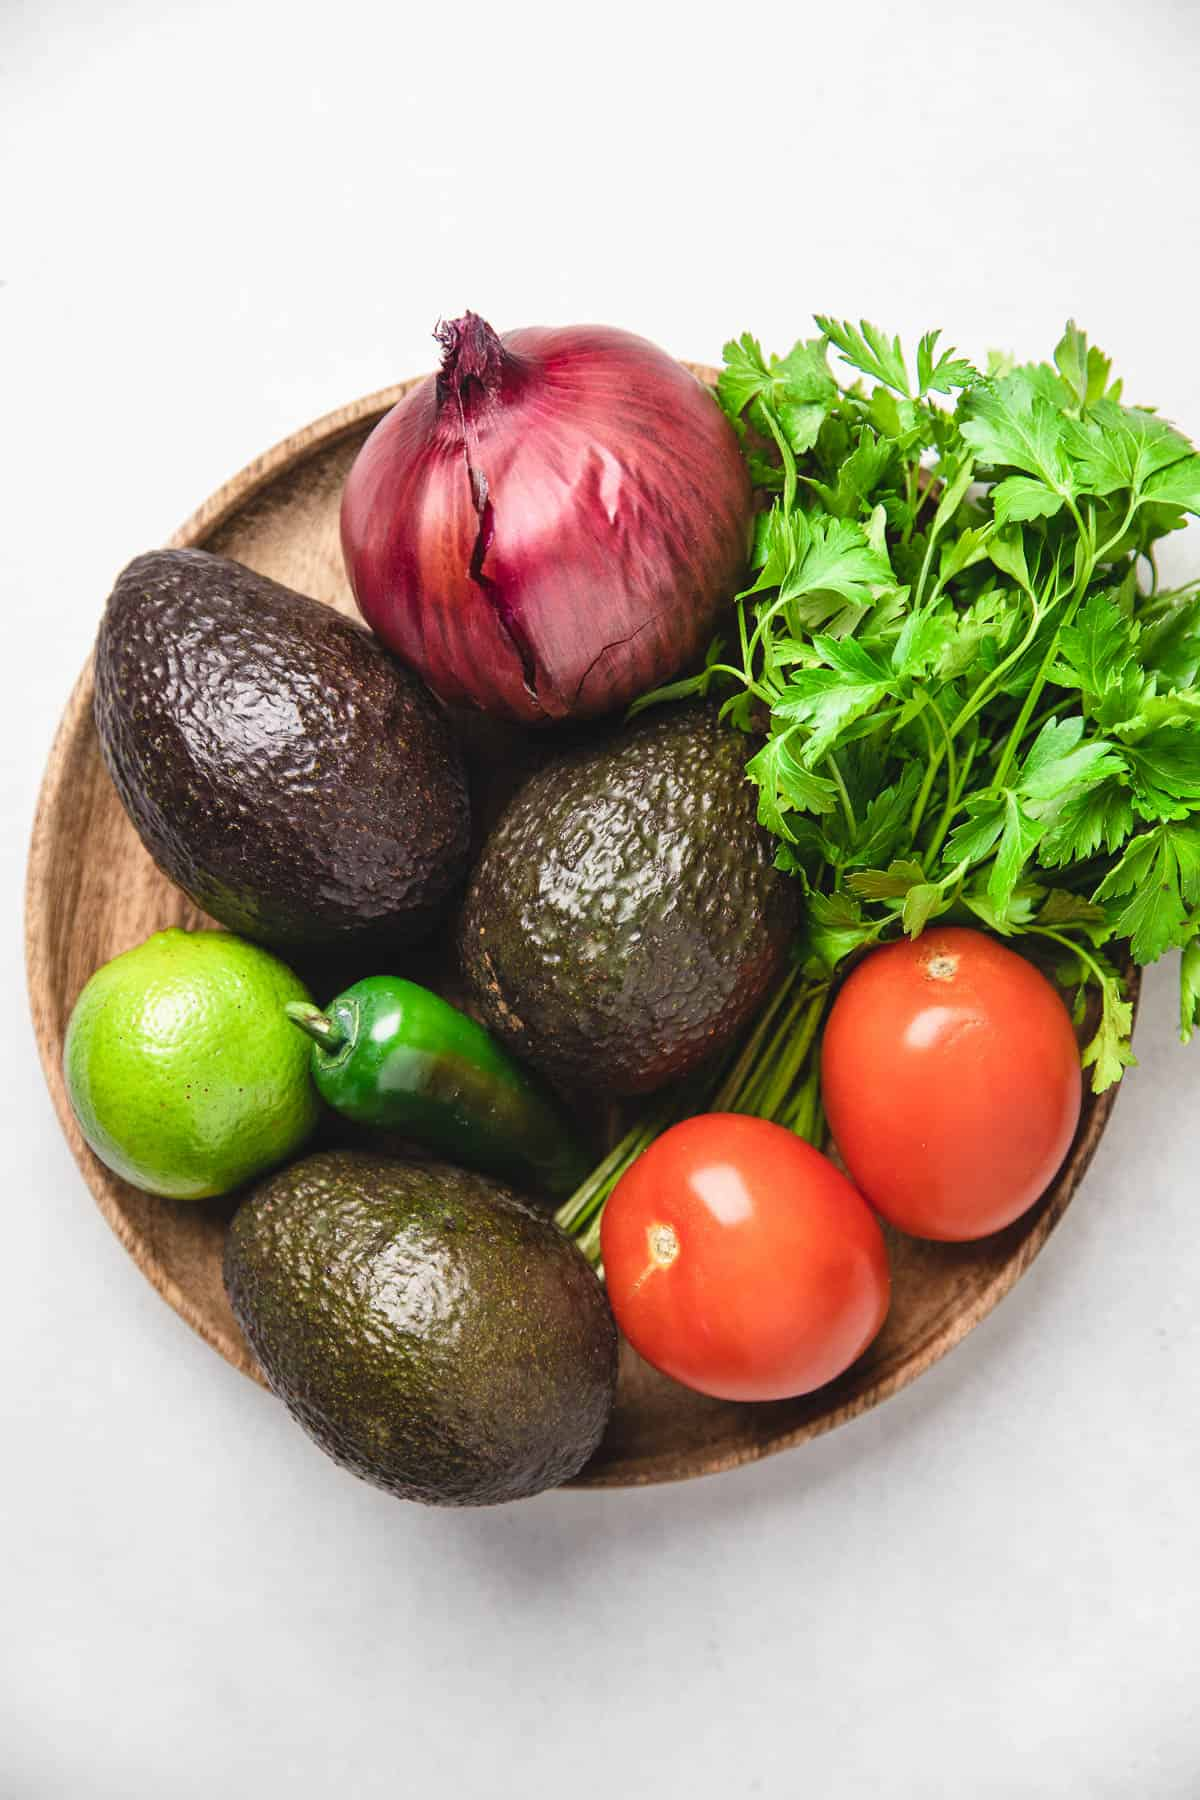 Vegetables on a wooden plate. Ingredients for guacamole.